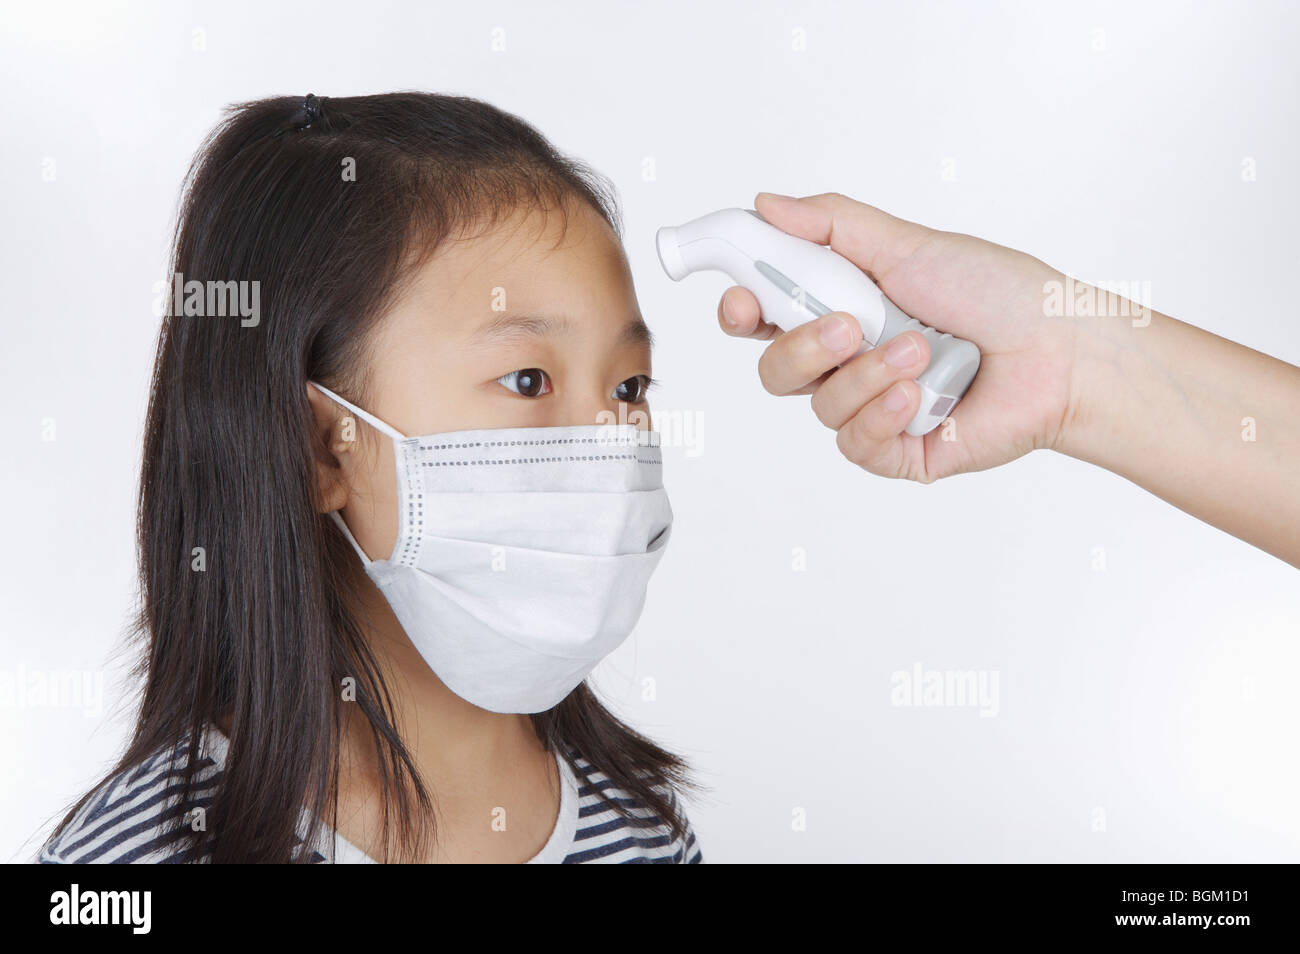 Fever Having On And Her Girl Wearing Surgical A Measuring Mask